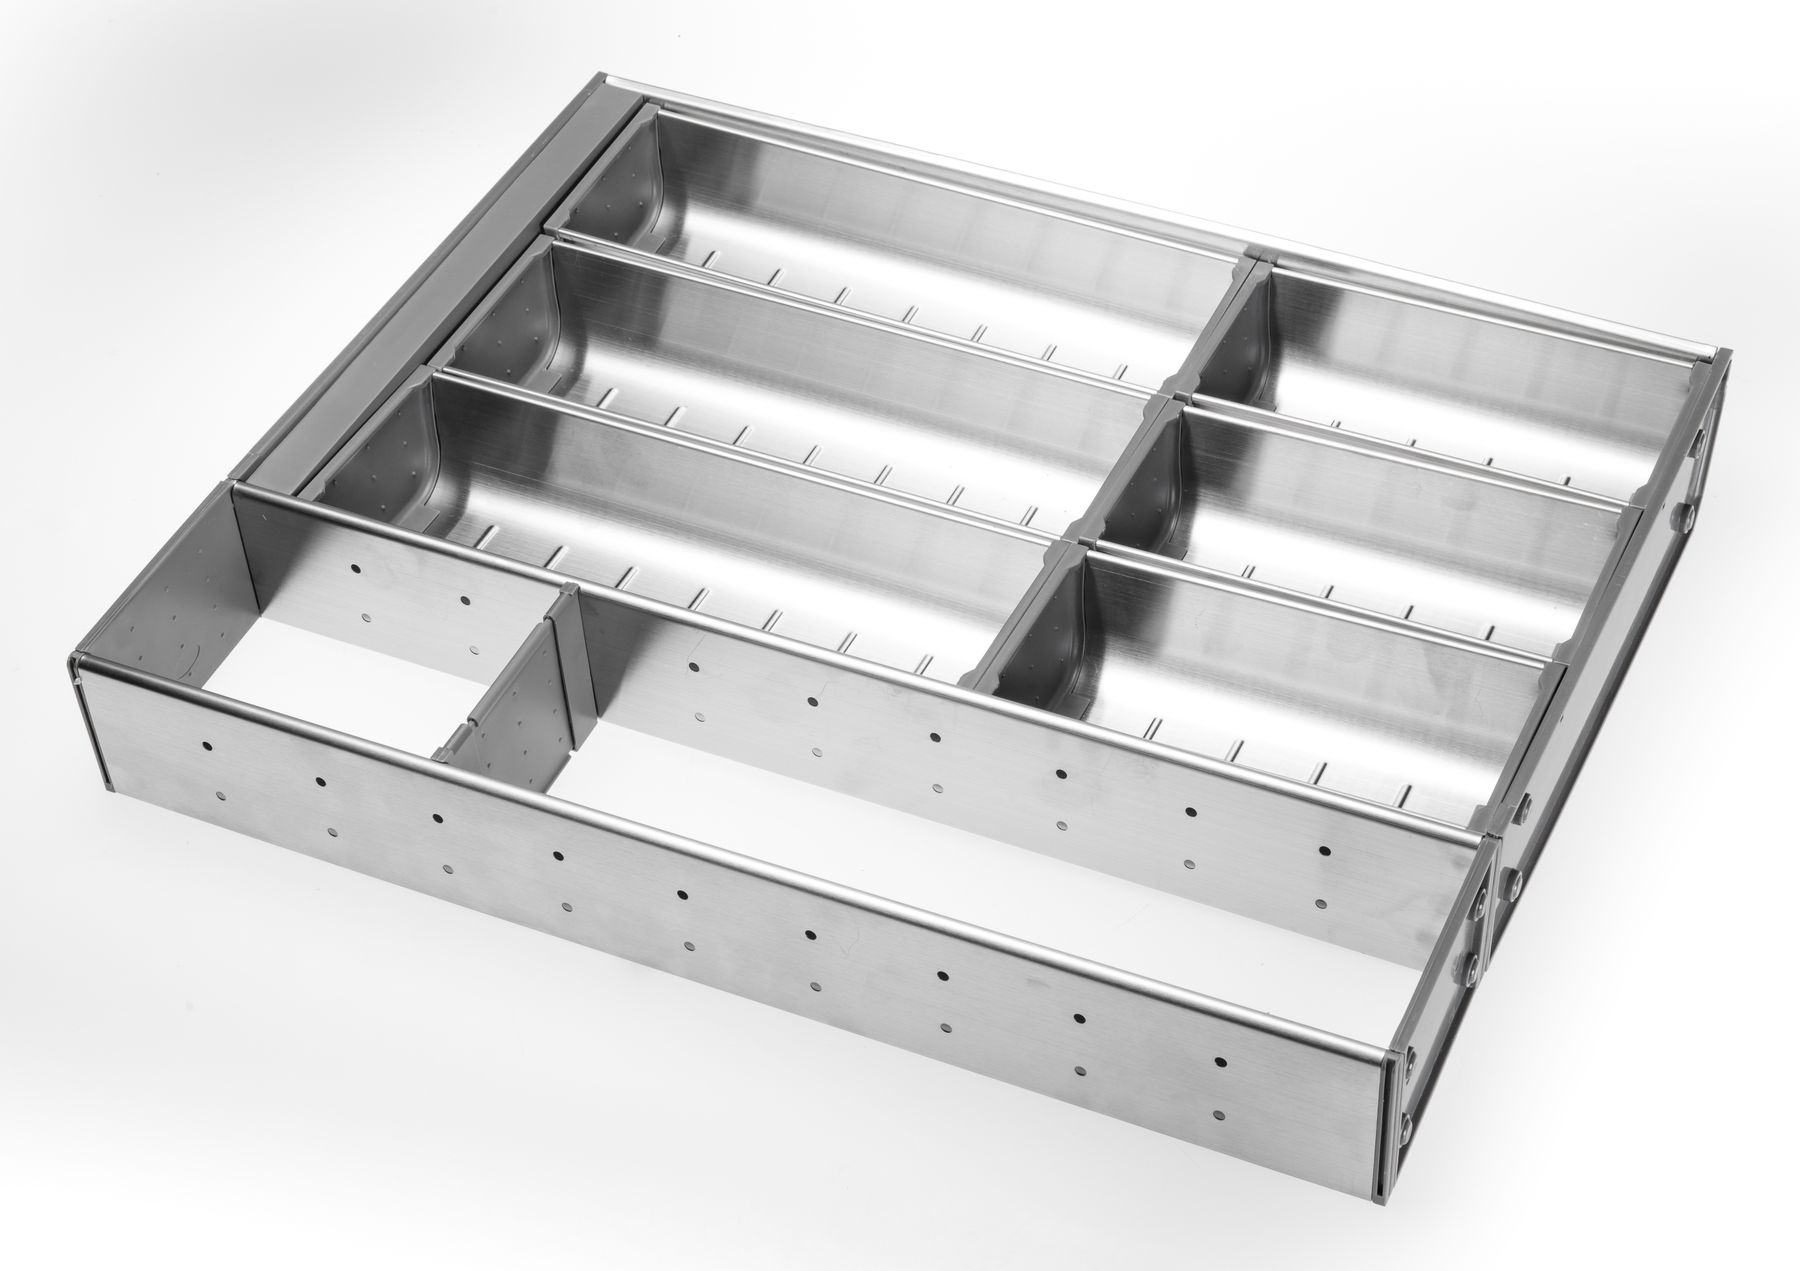 Stainless Steel Cutlery Insert for 450mm wide Drawer for Kitchen